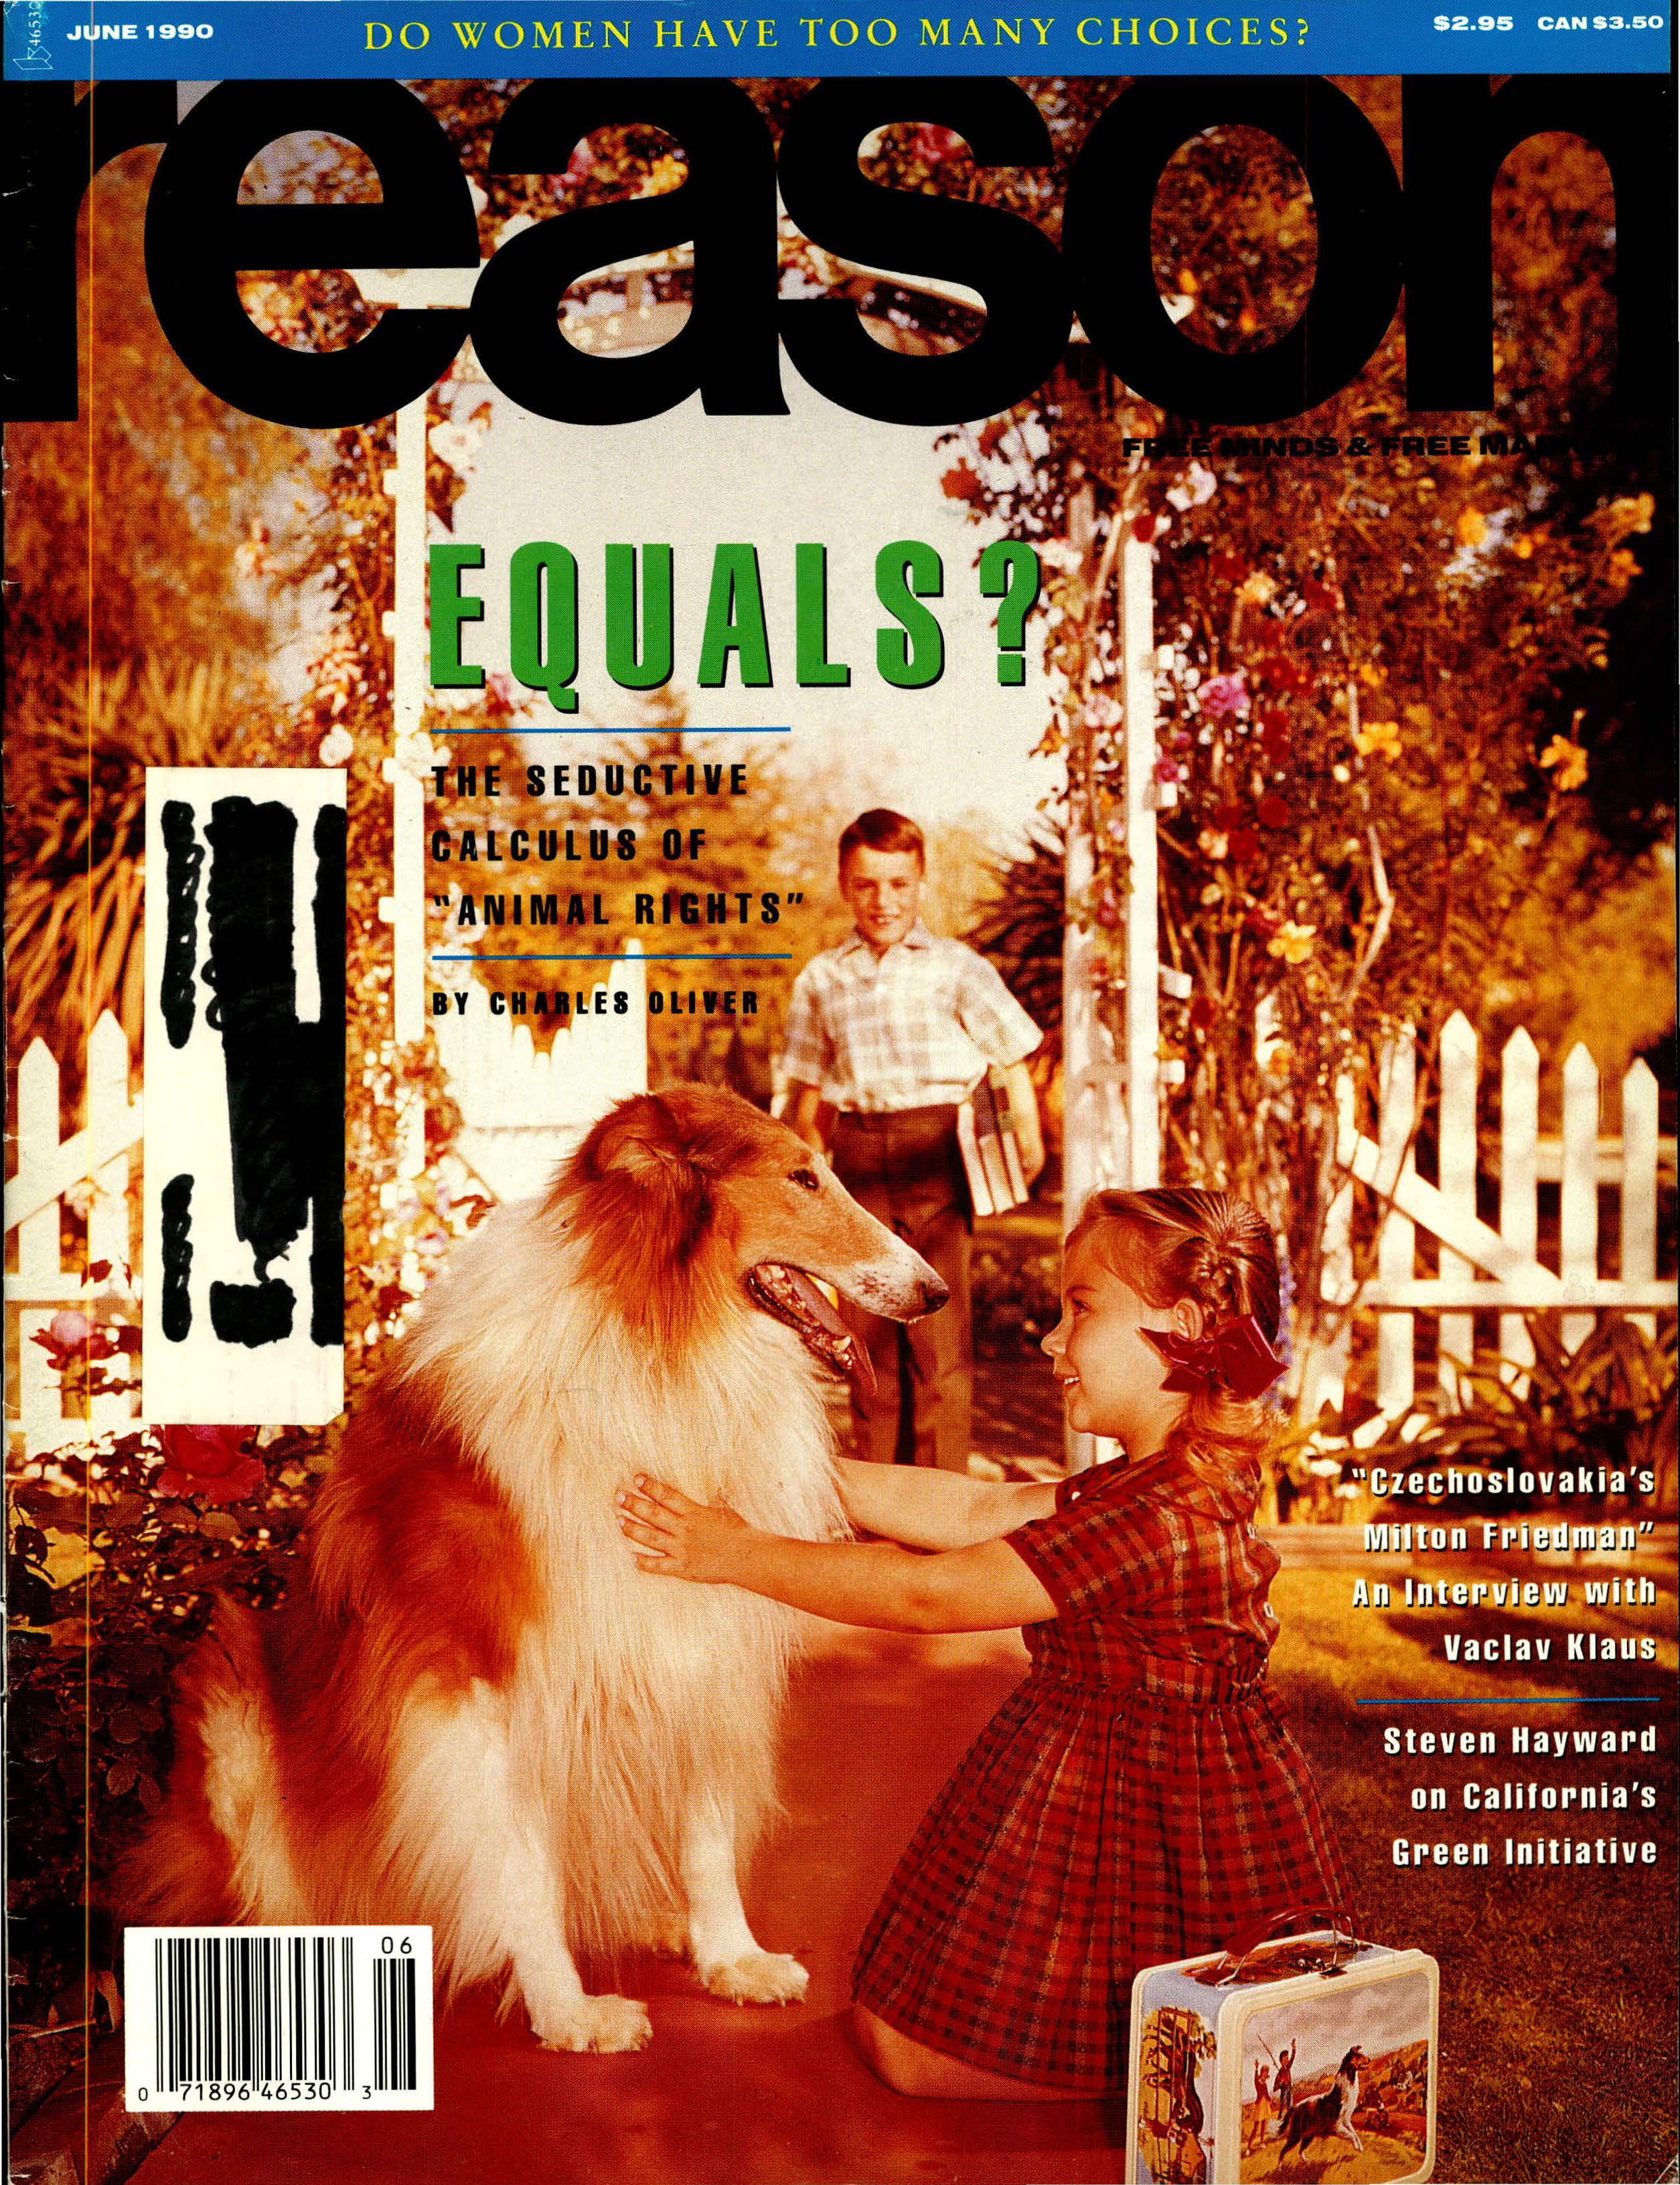 Reason Magazine, June 1990 cover image